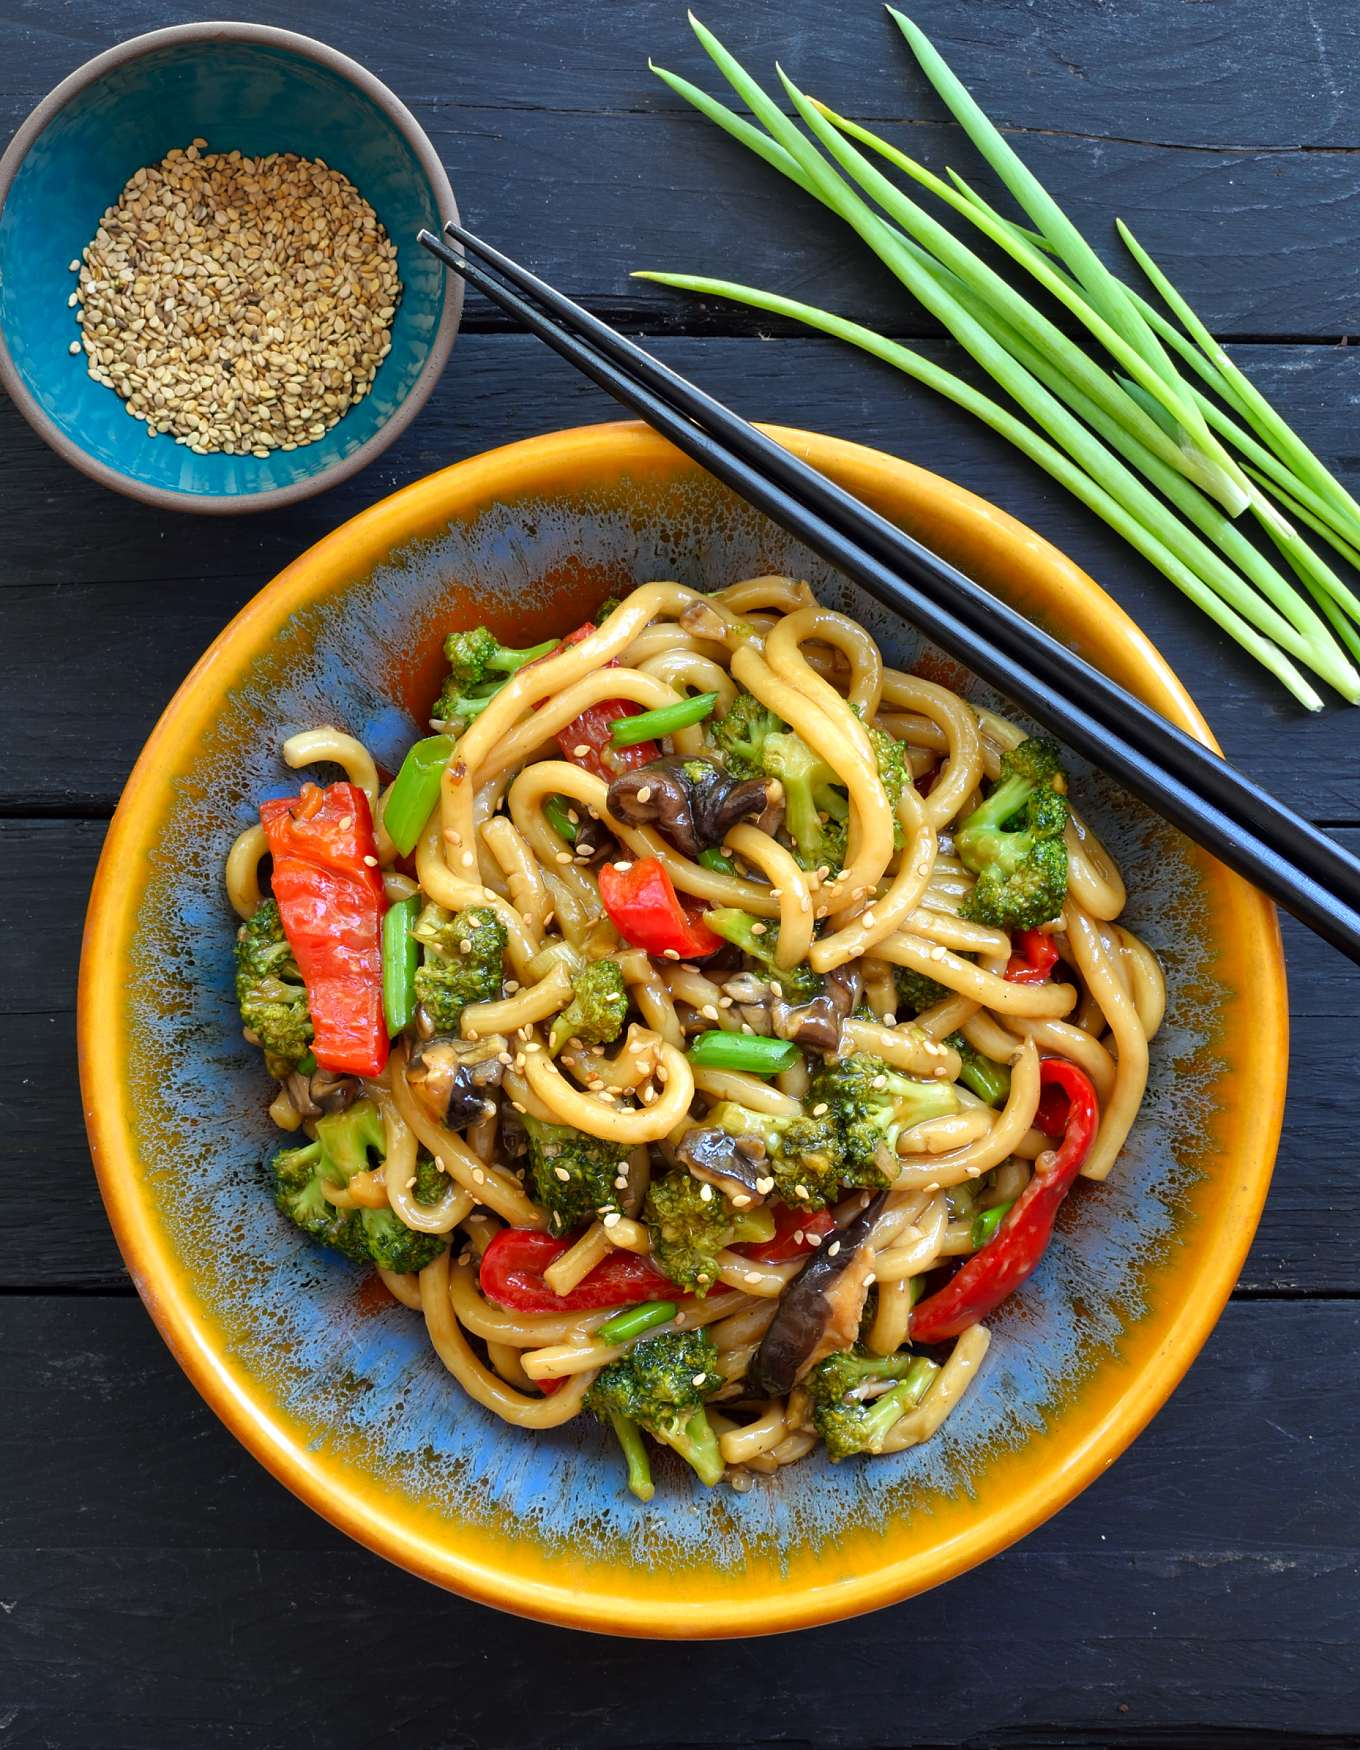 This recipe for vegetable udon stir fry is quick and easy, ready in just fifteen minutes and a great weeknight dinner idea.